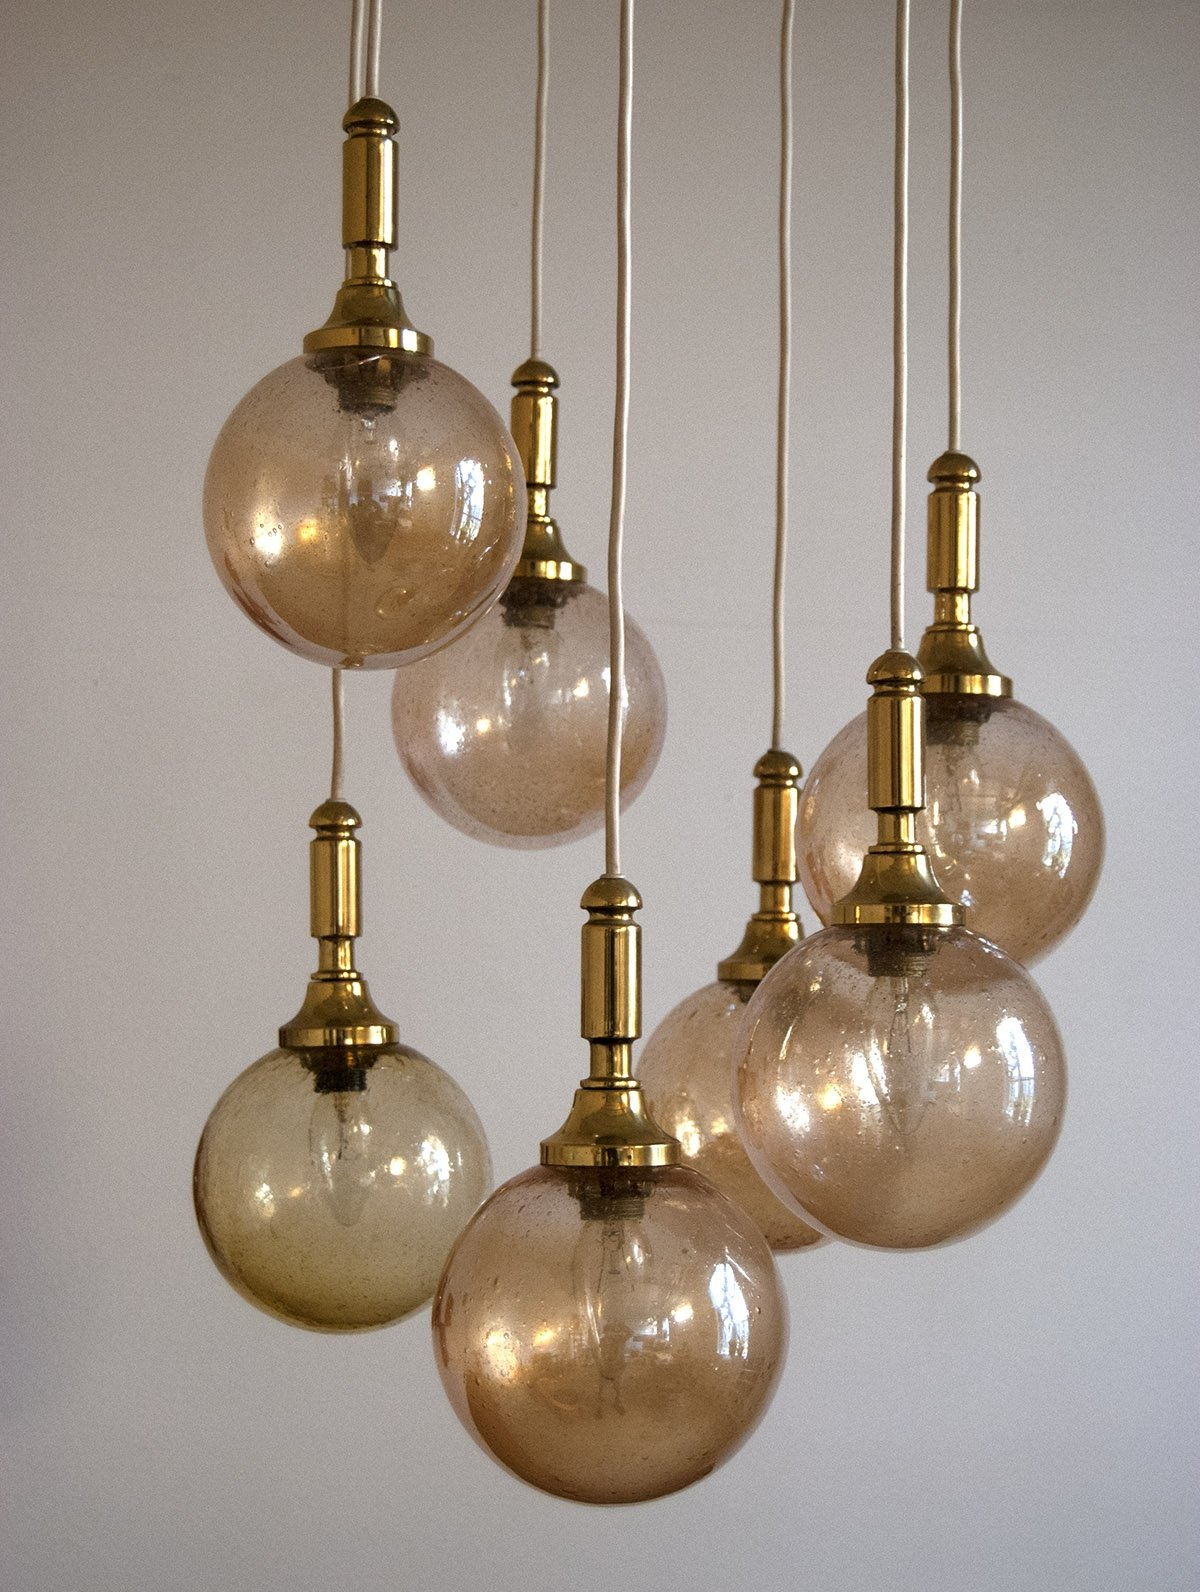 70s Hanging Lamp with brass & golden Glass Balls | #75006